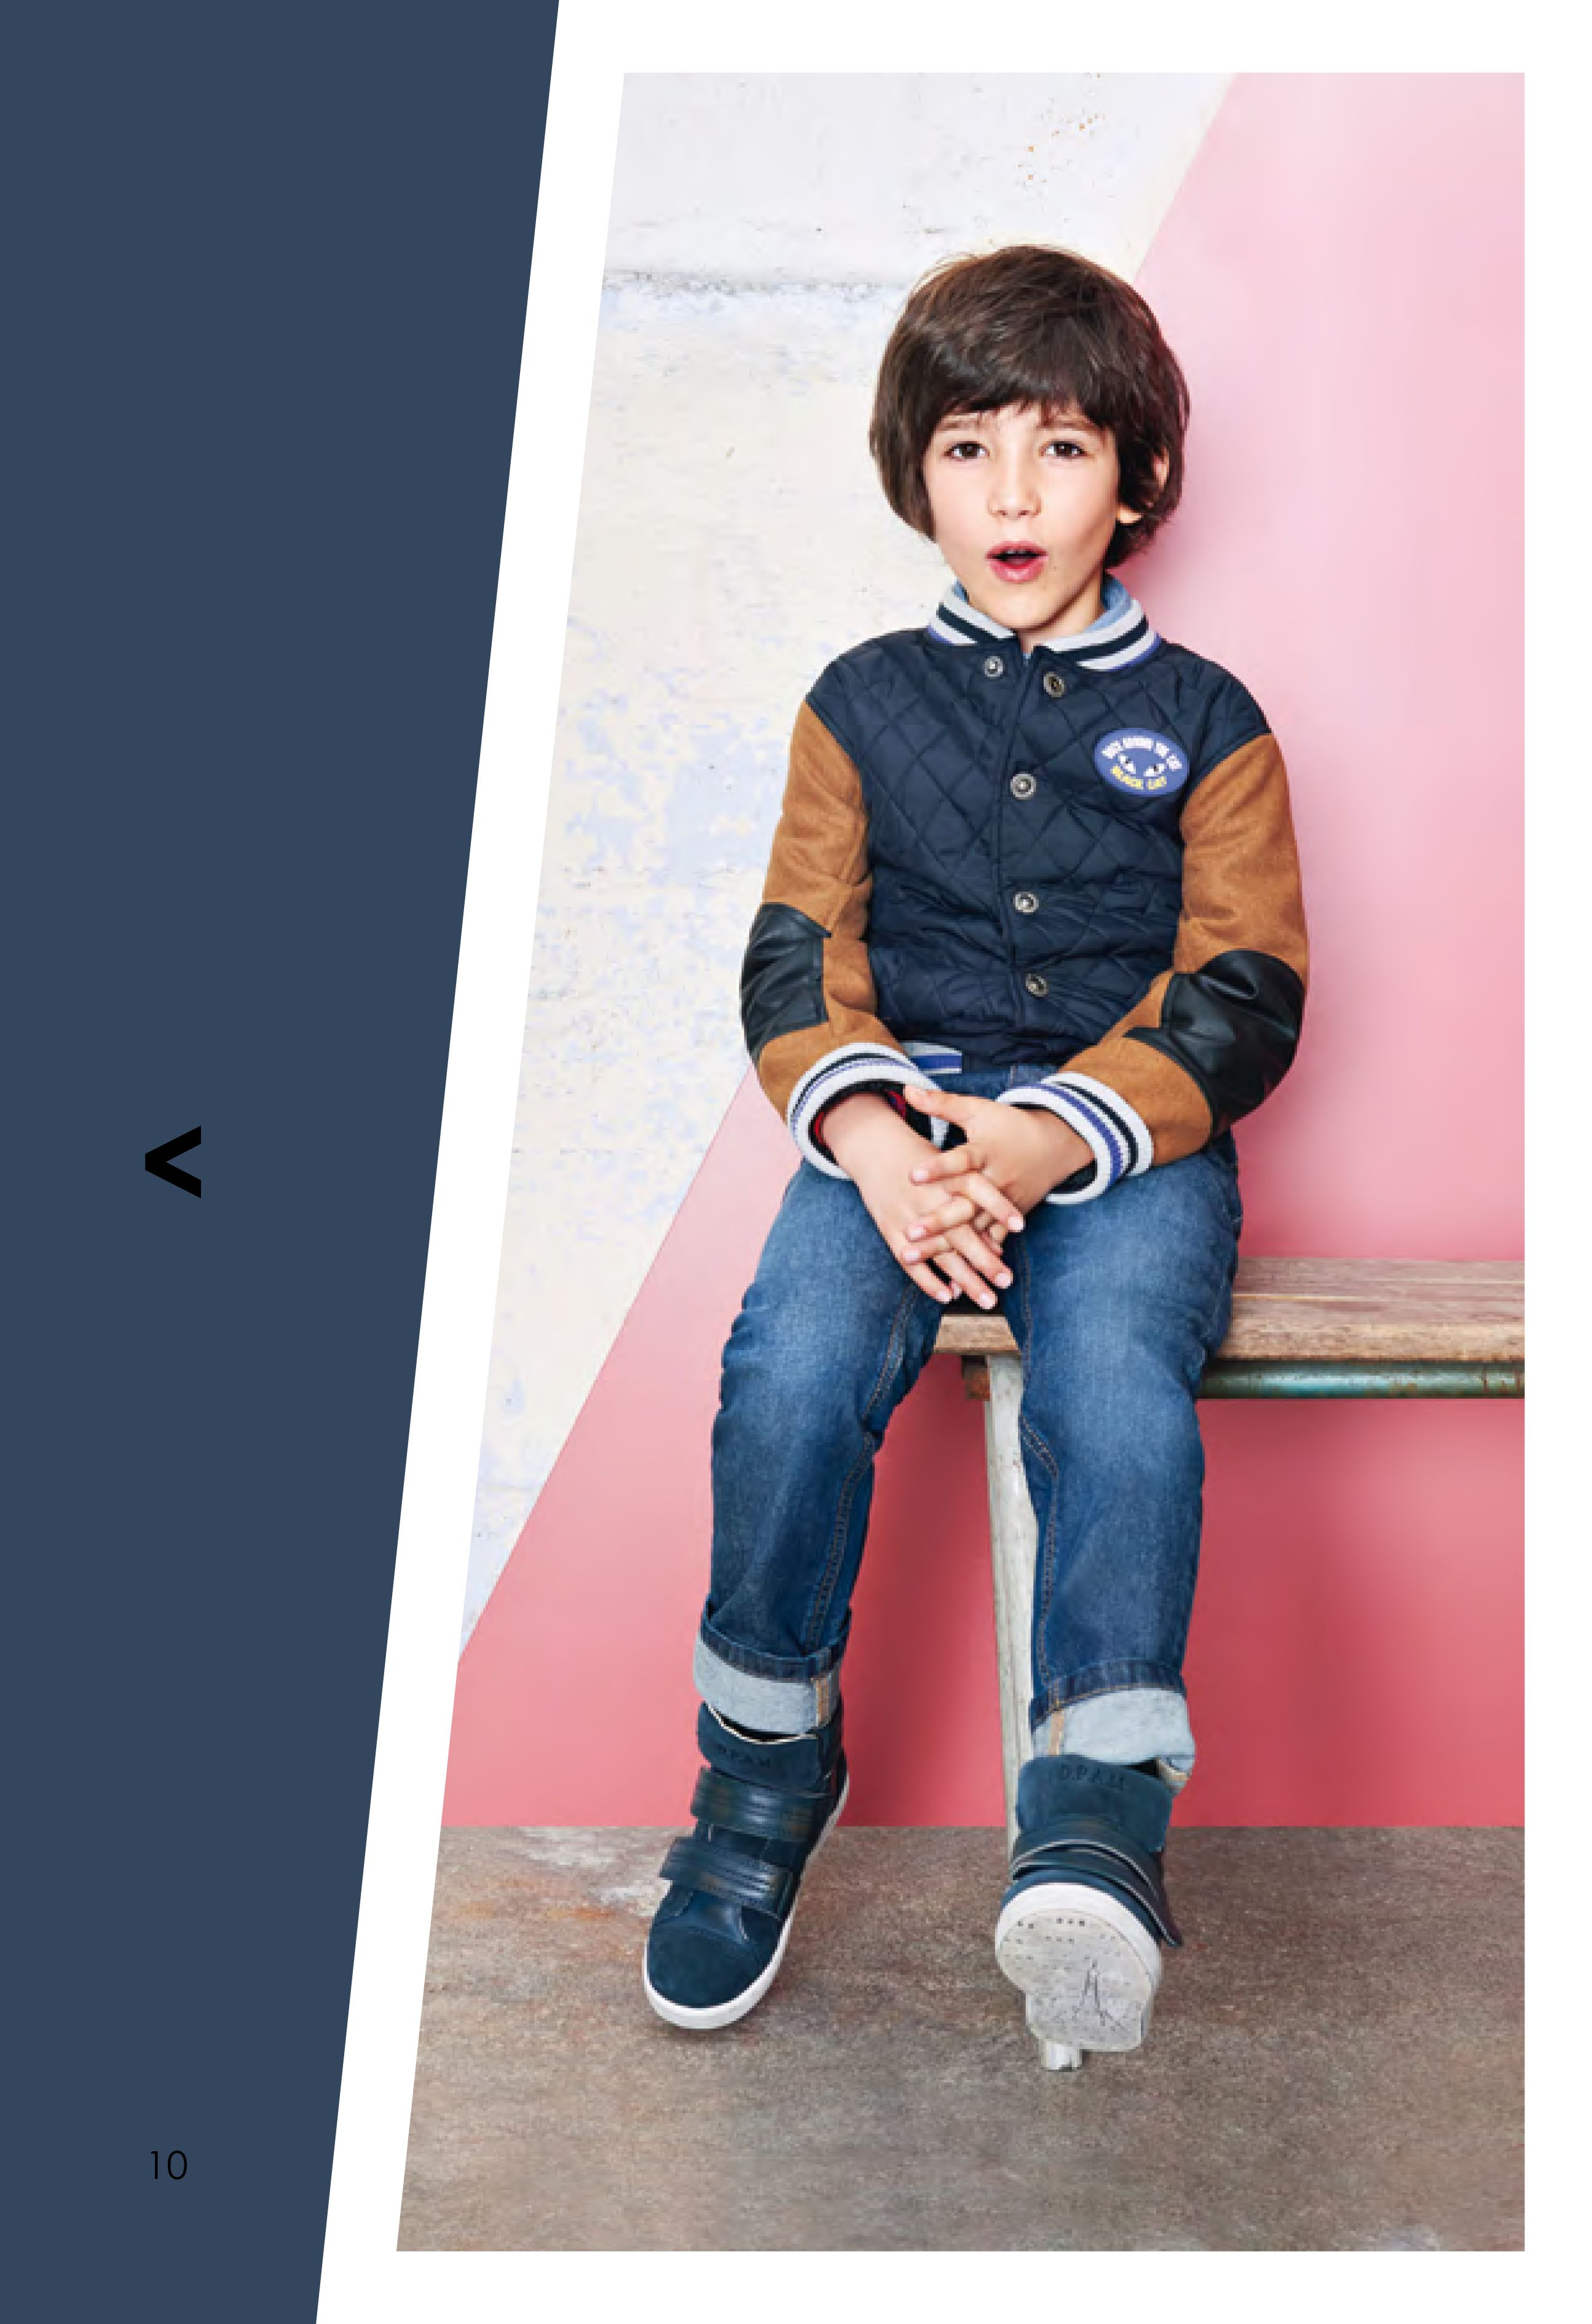 89f5636c3b39c  dpam  enfant  mode  hiver  garcon  kid  fashion  winter  boy  lookbook   outfit  outfit